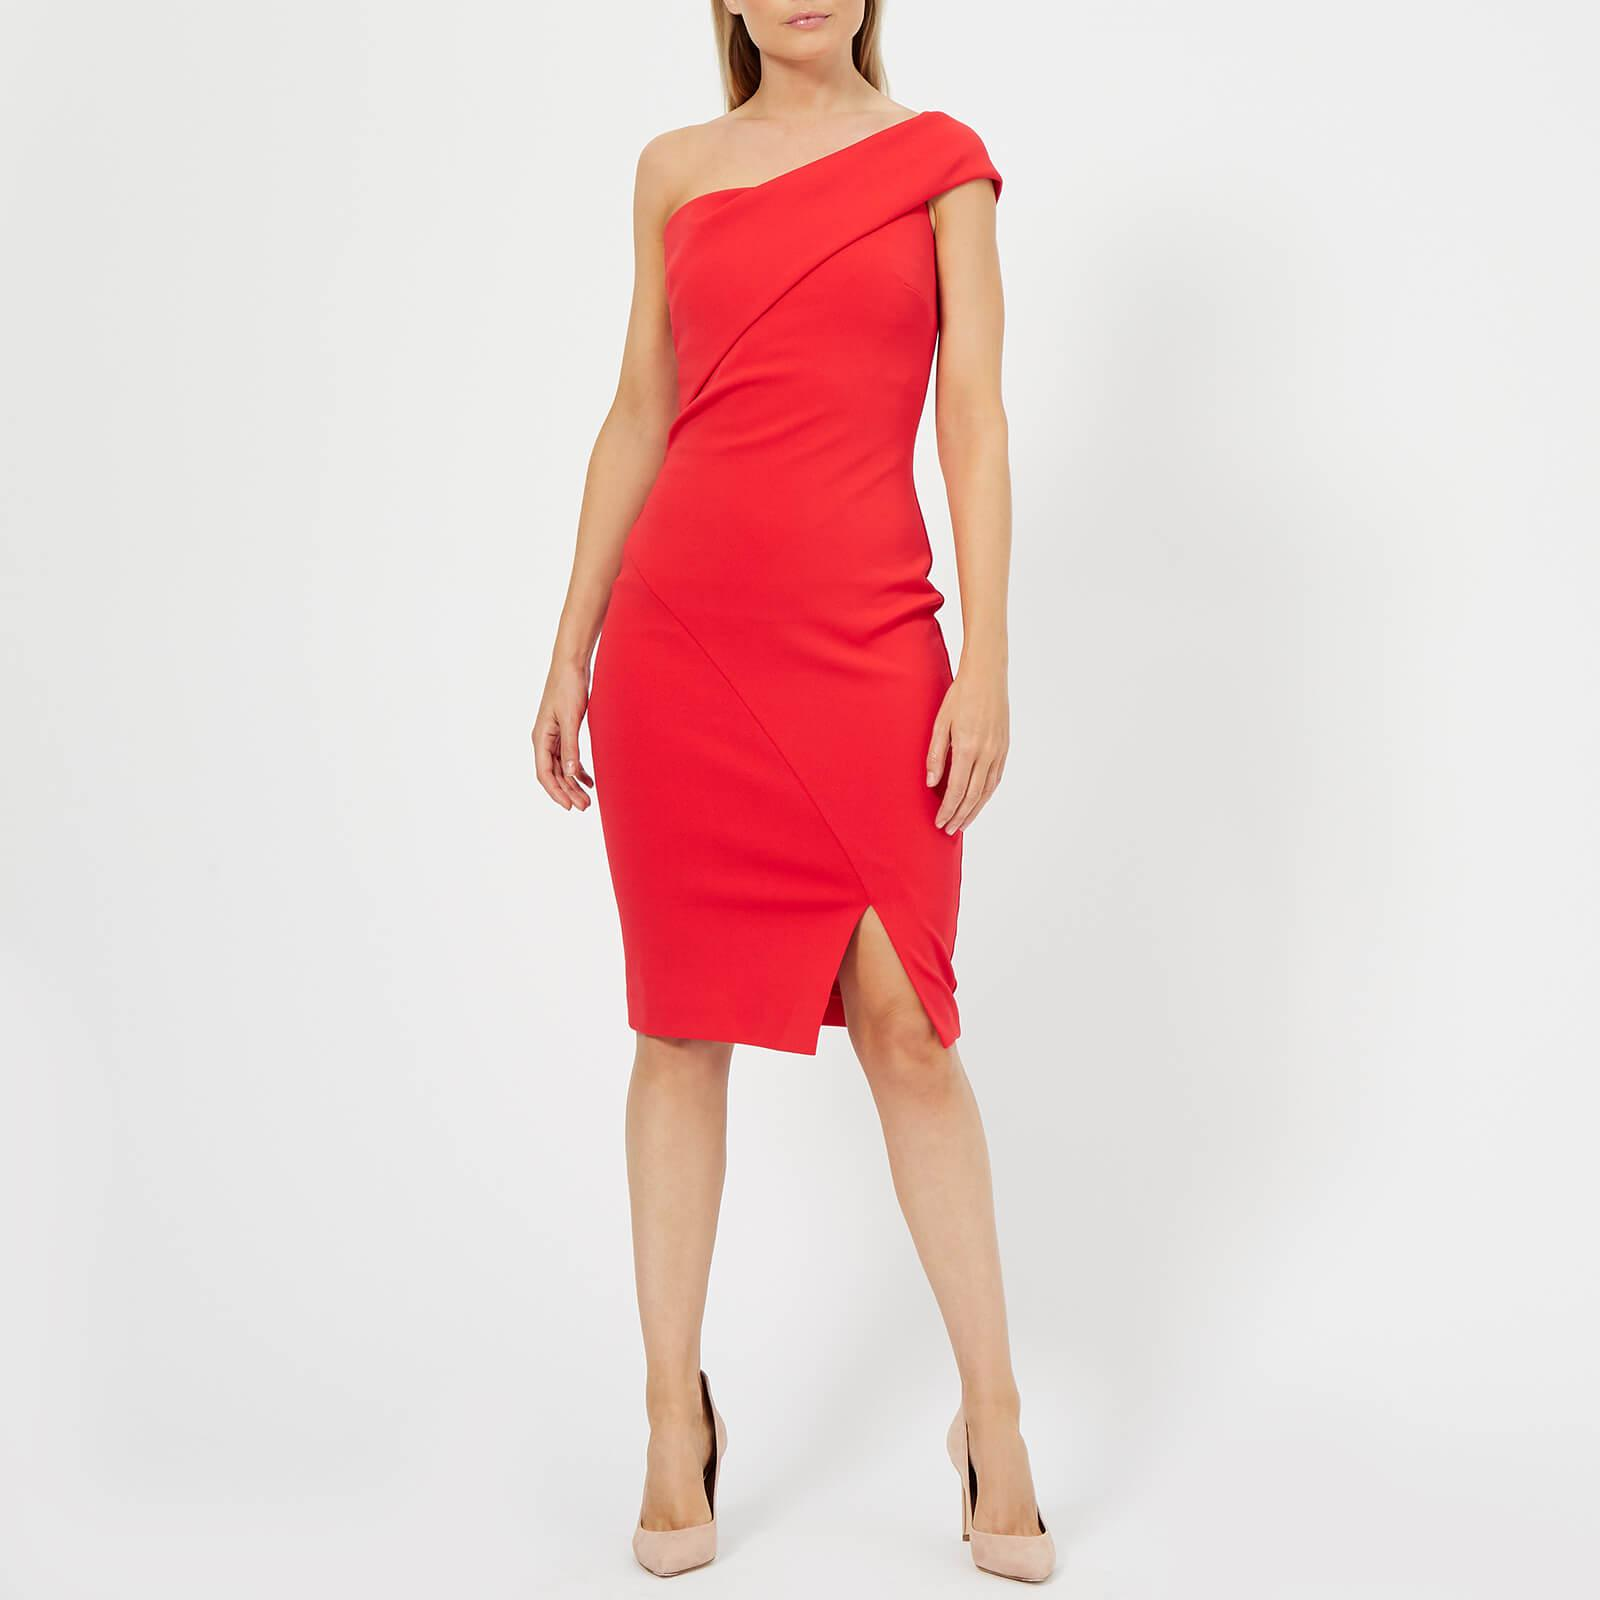 6e75a71de527e3 Lyst - Ted Baker Areena One Sleeve Bardot Dress in Red